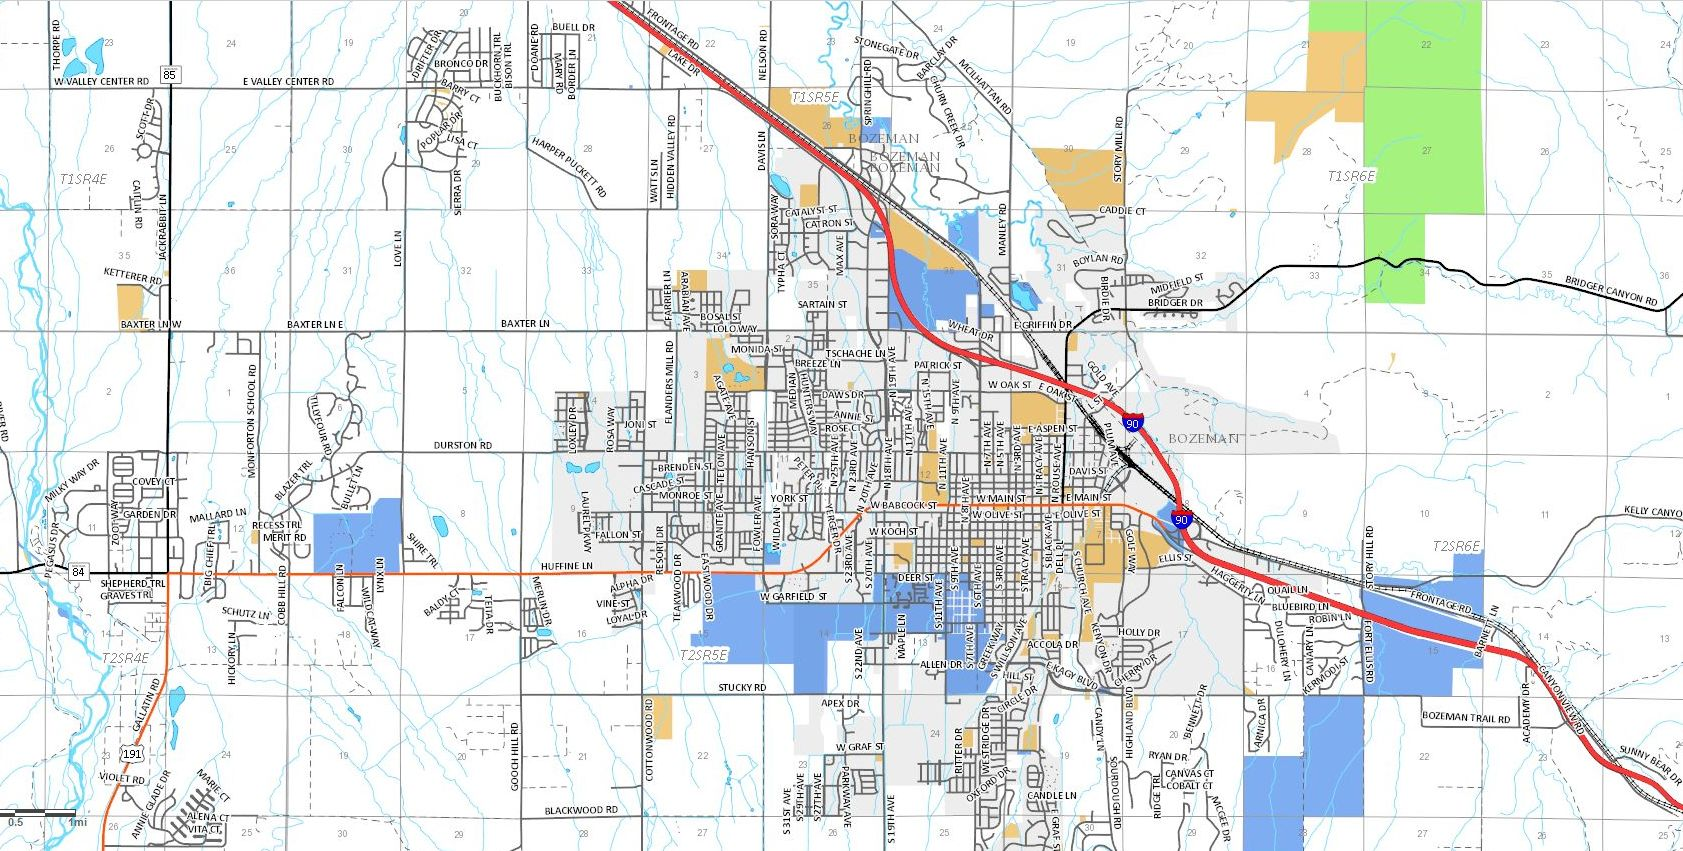 Bozeman Subdivisions and Bozeman Street Map